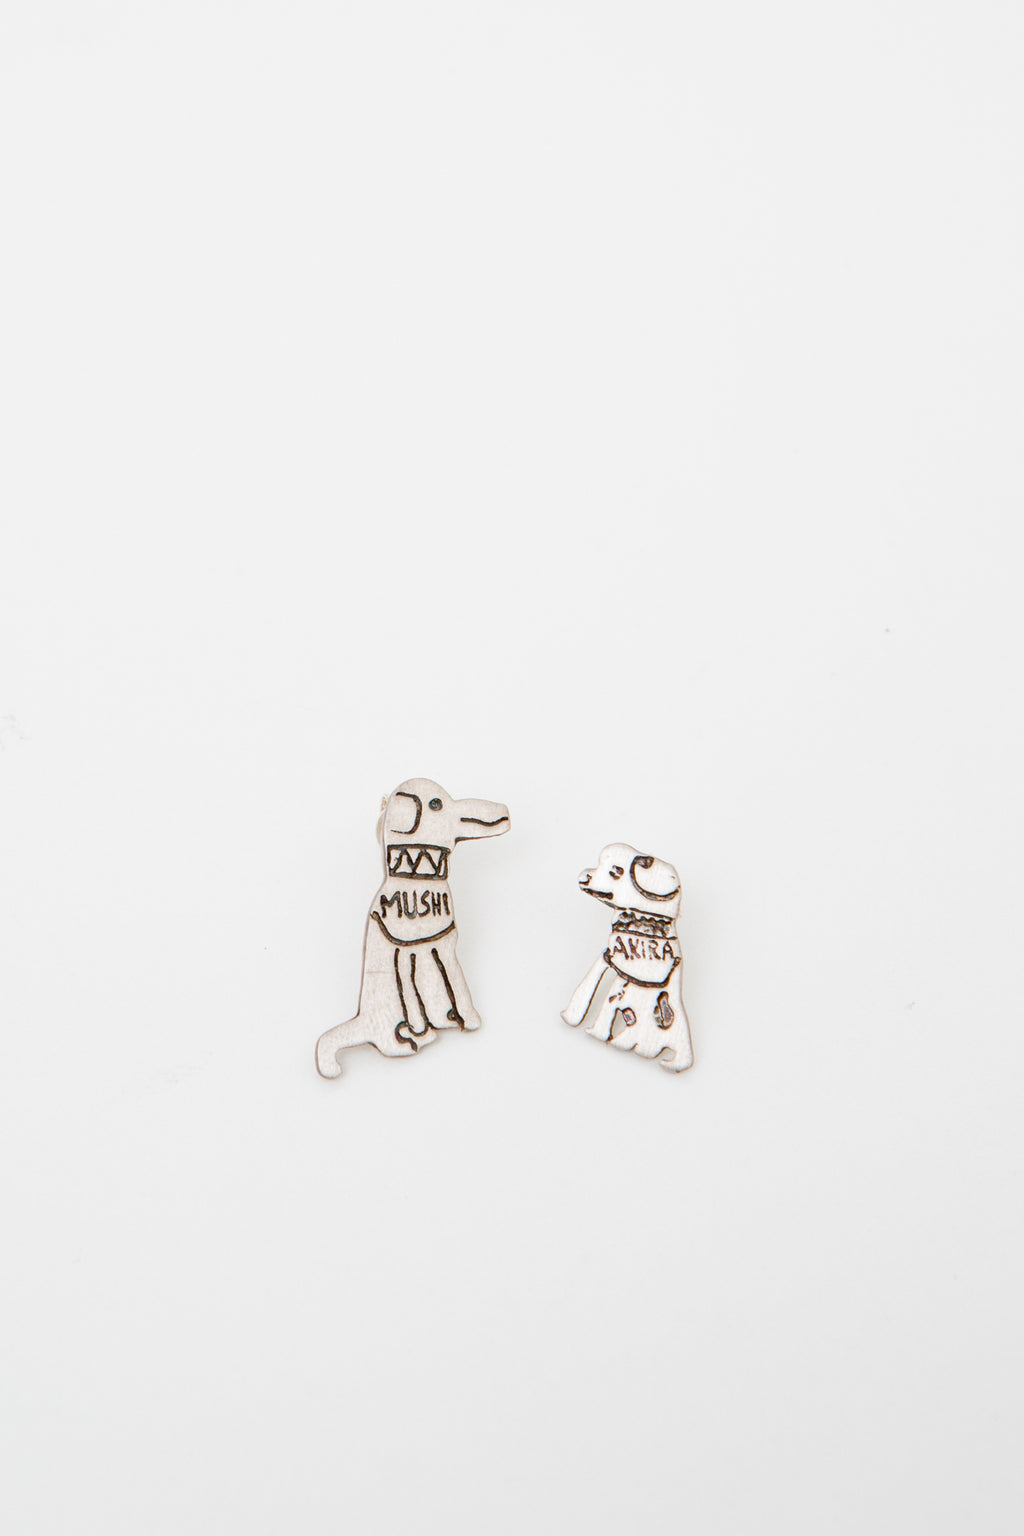 EARRINGS AKIRA & MUSHI * BEST FRIENDS